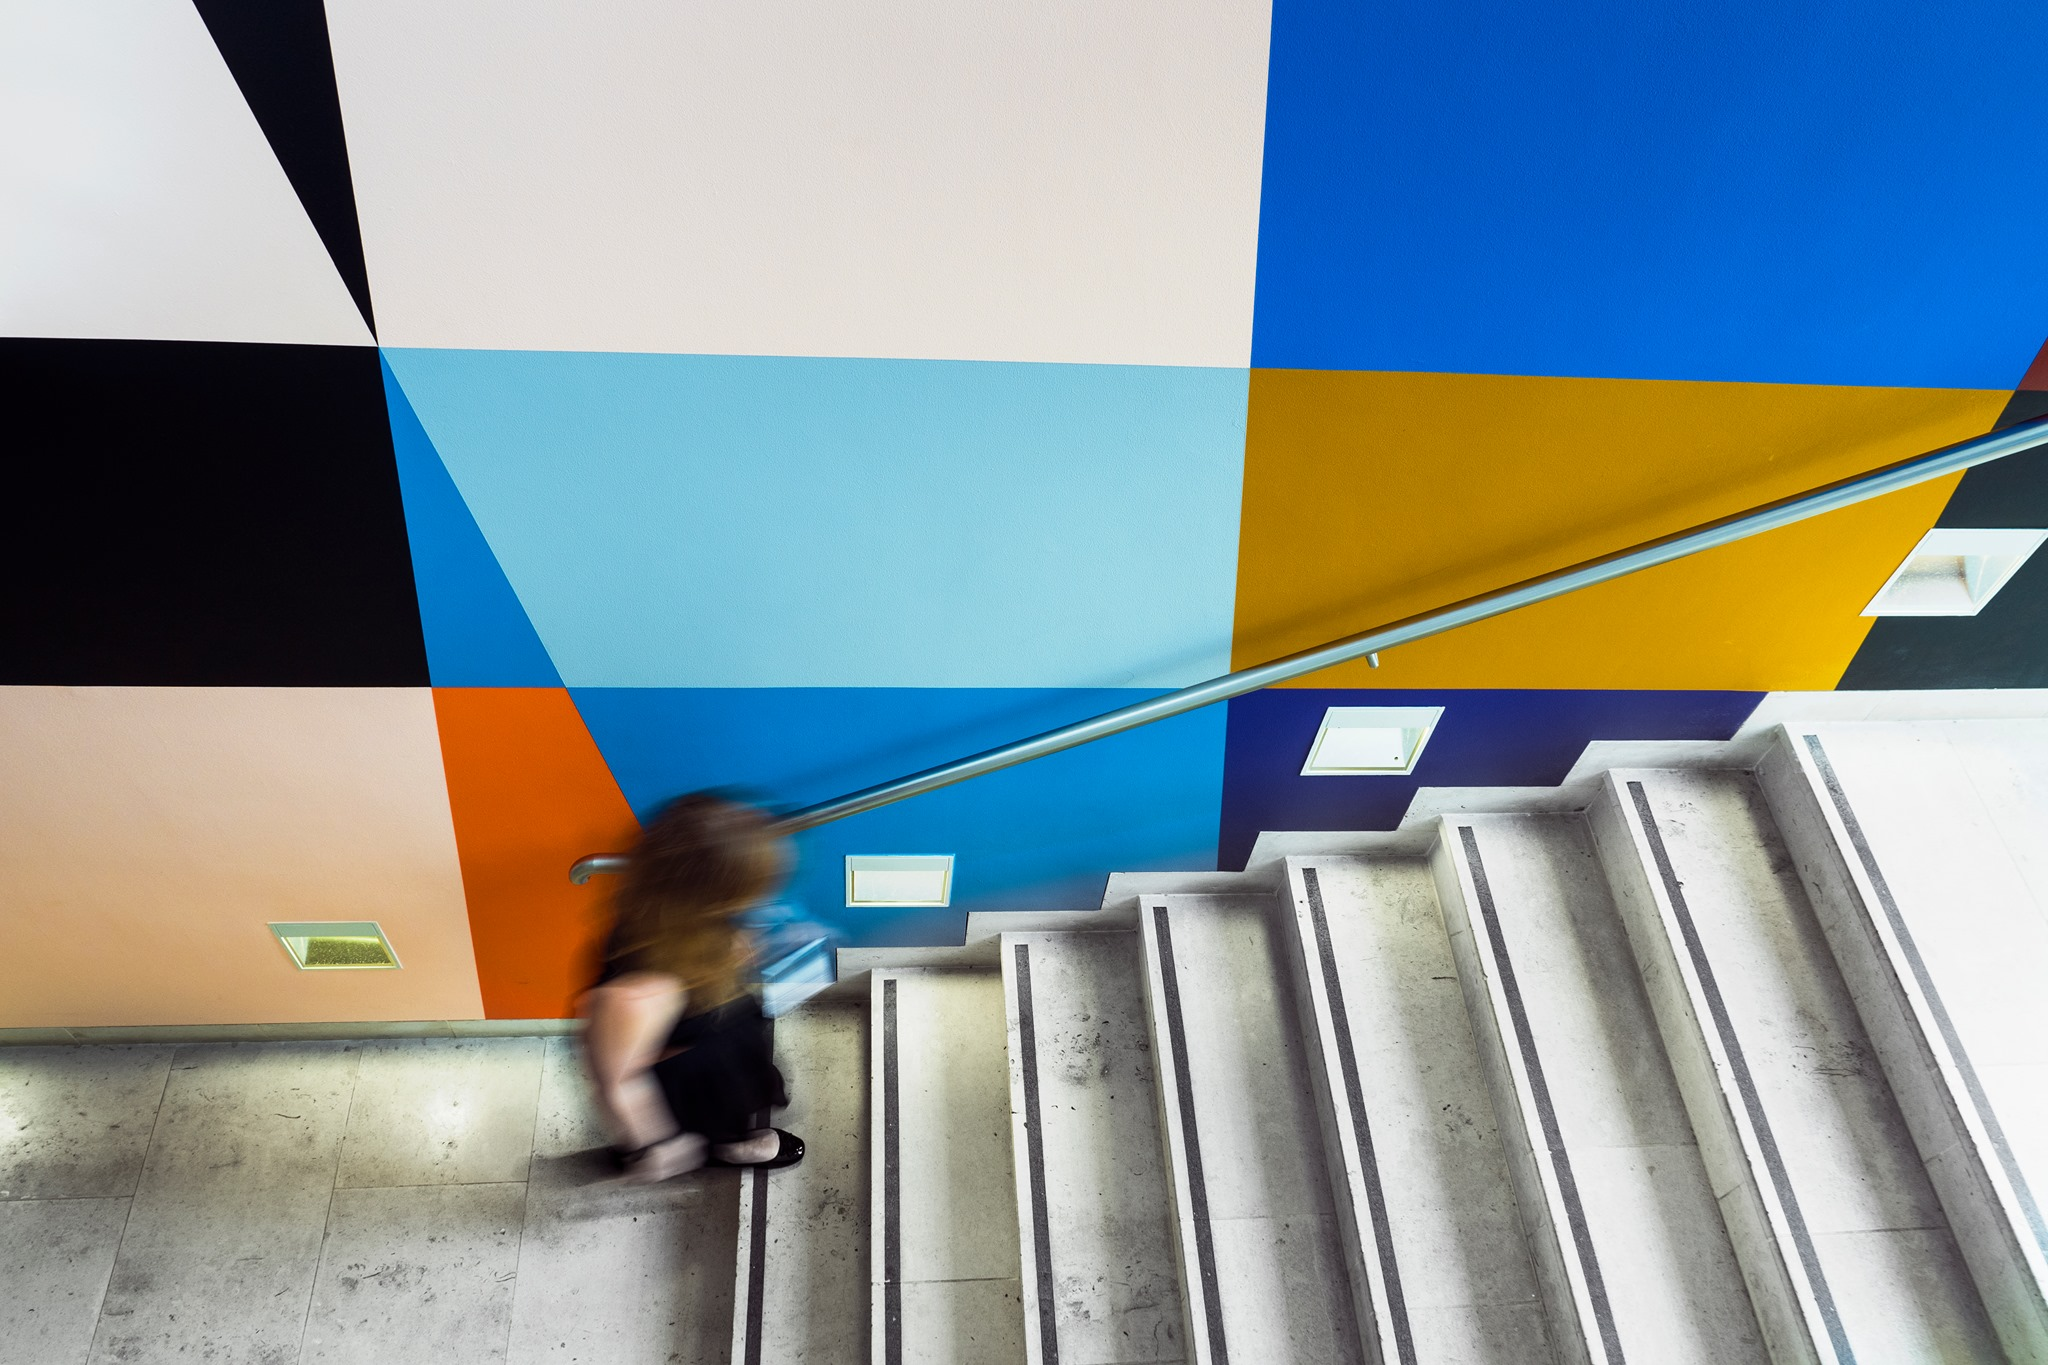 View looking down a stairwell decorated with a colourful geometric mural as a woman dressed in black climbs the stairs.